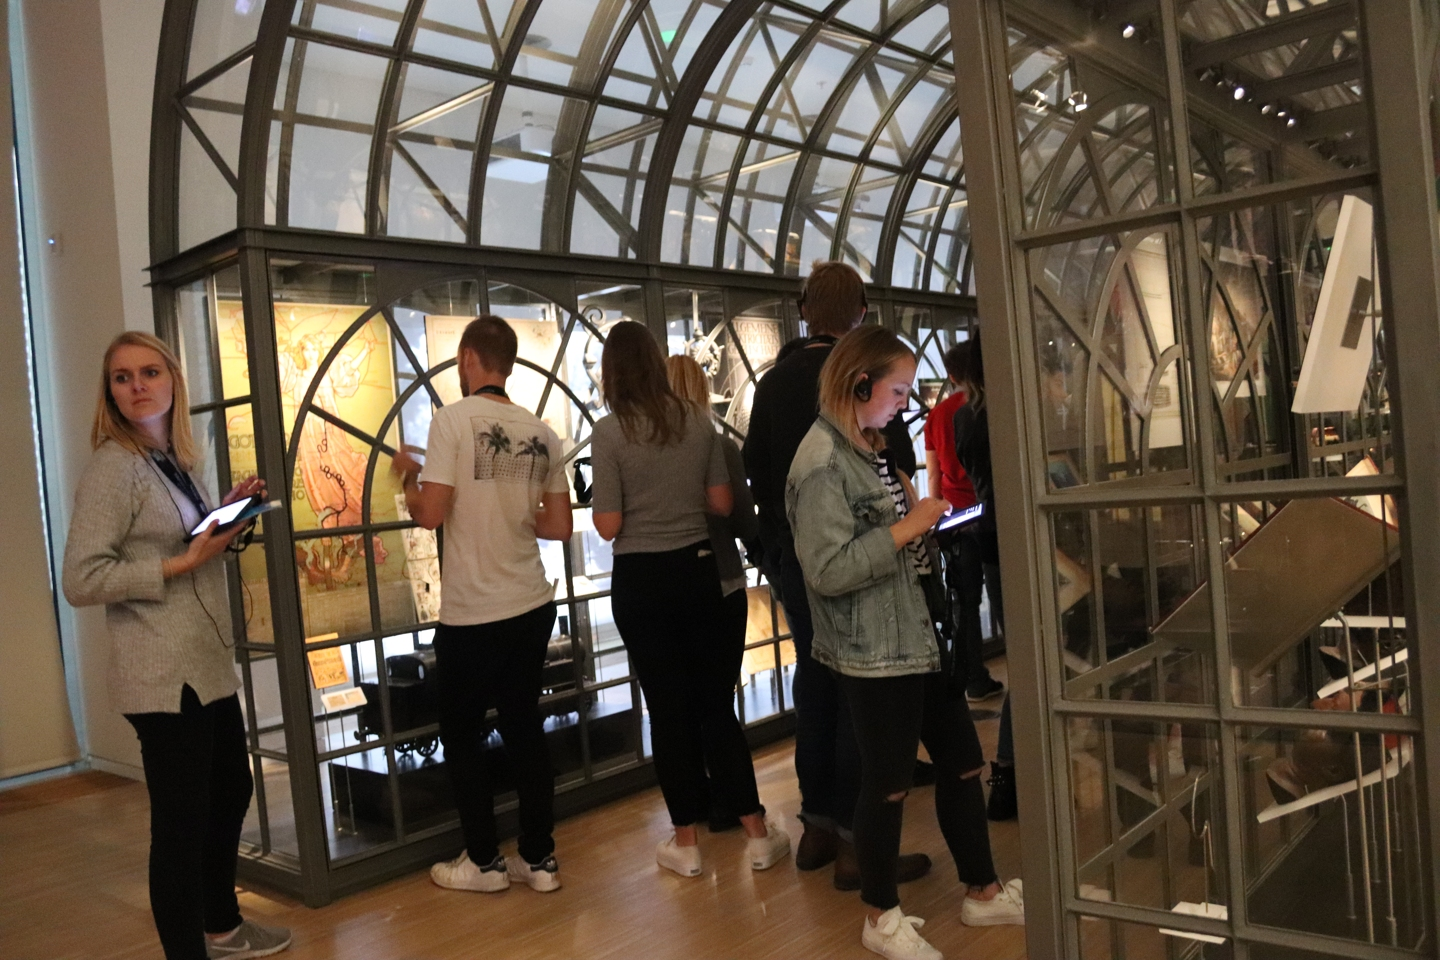 Students looking around in the House of European History